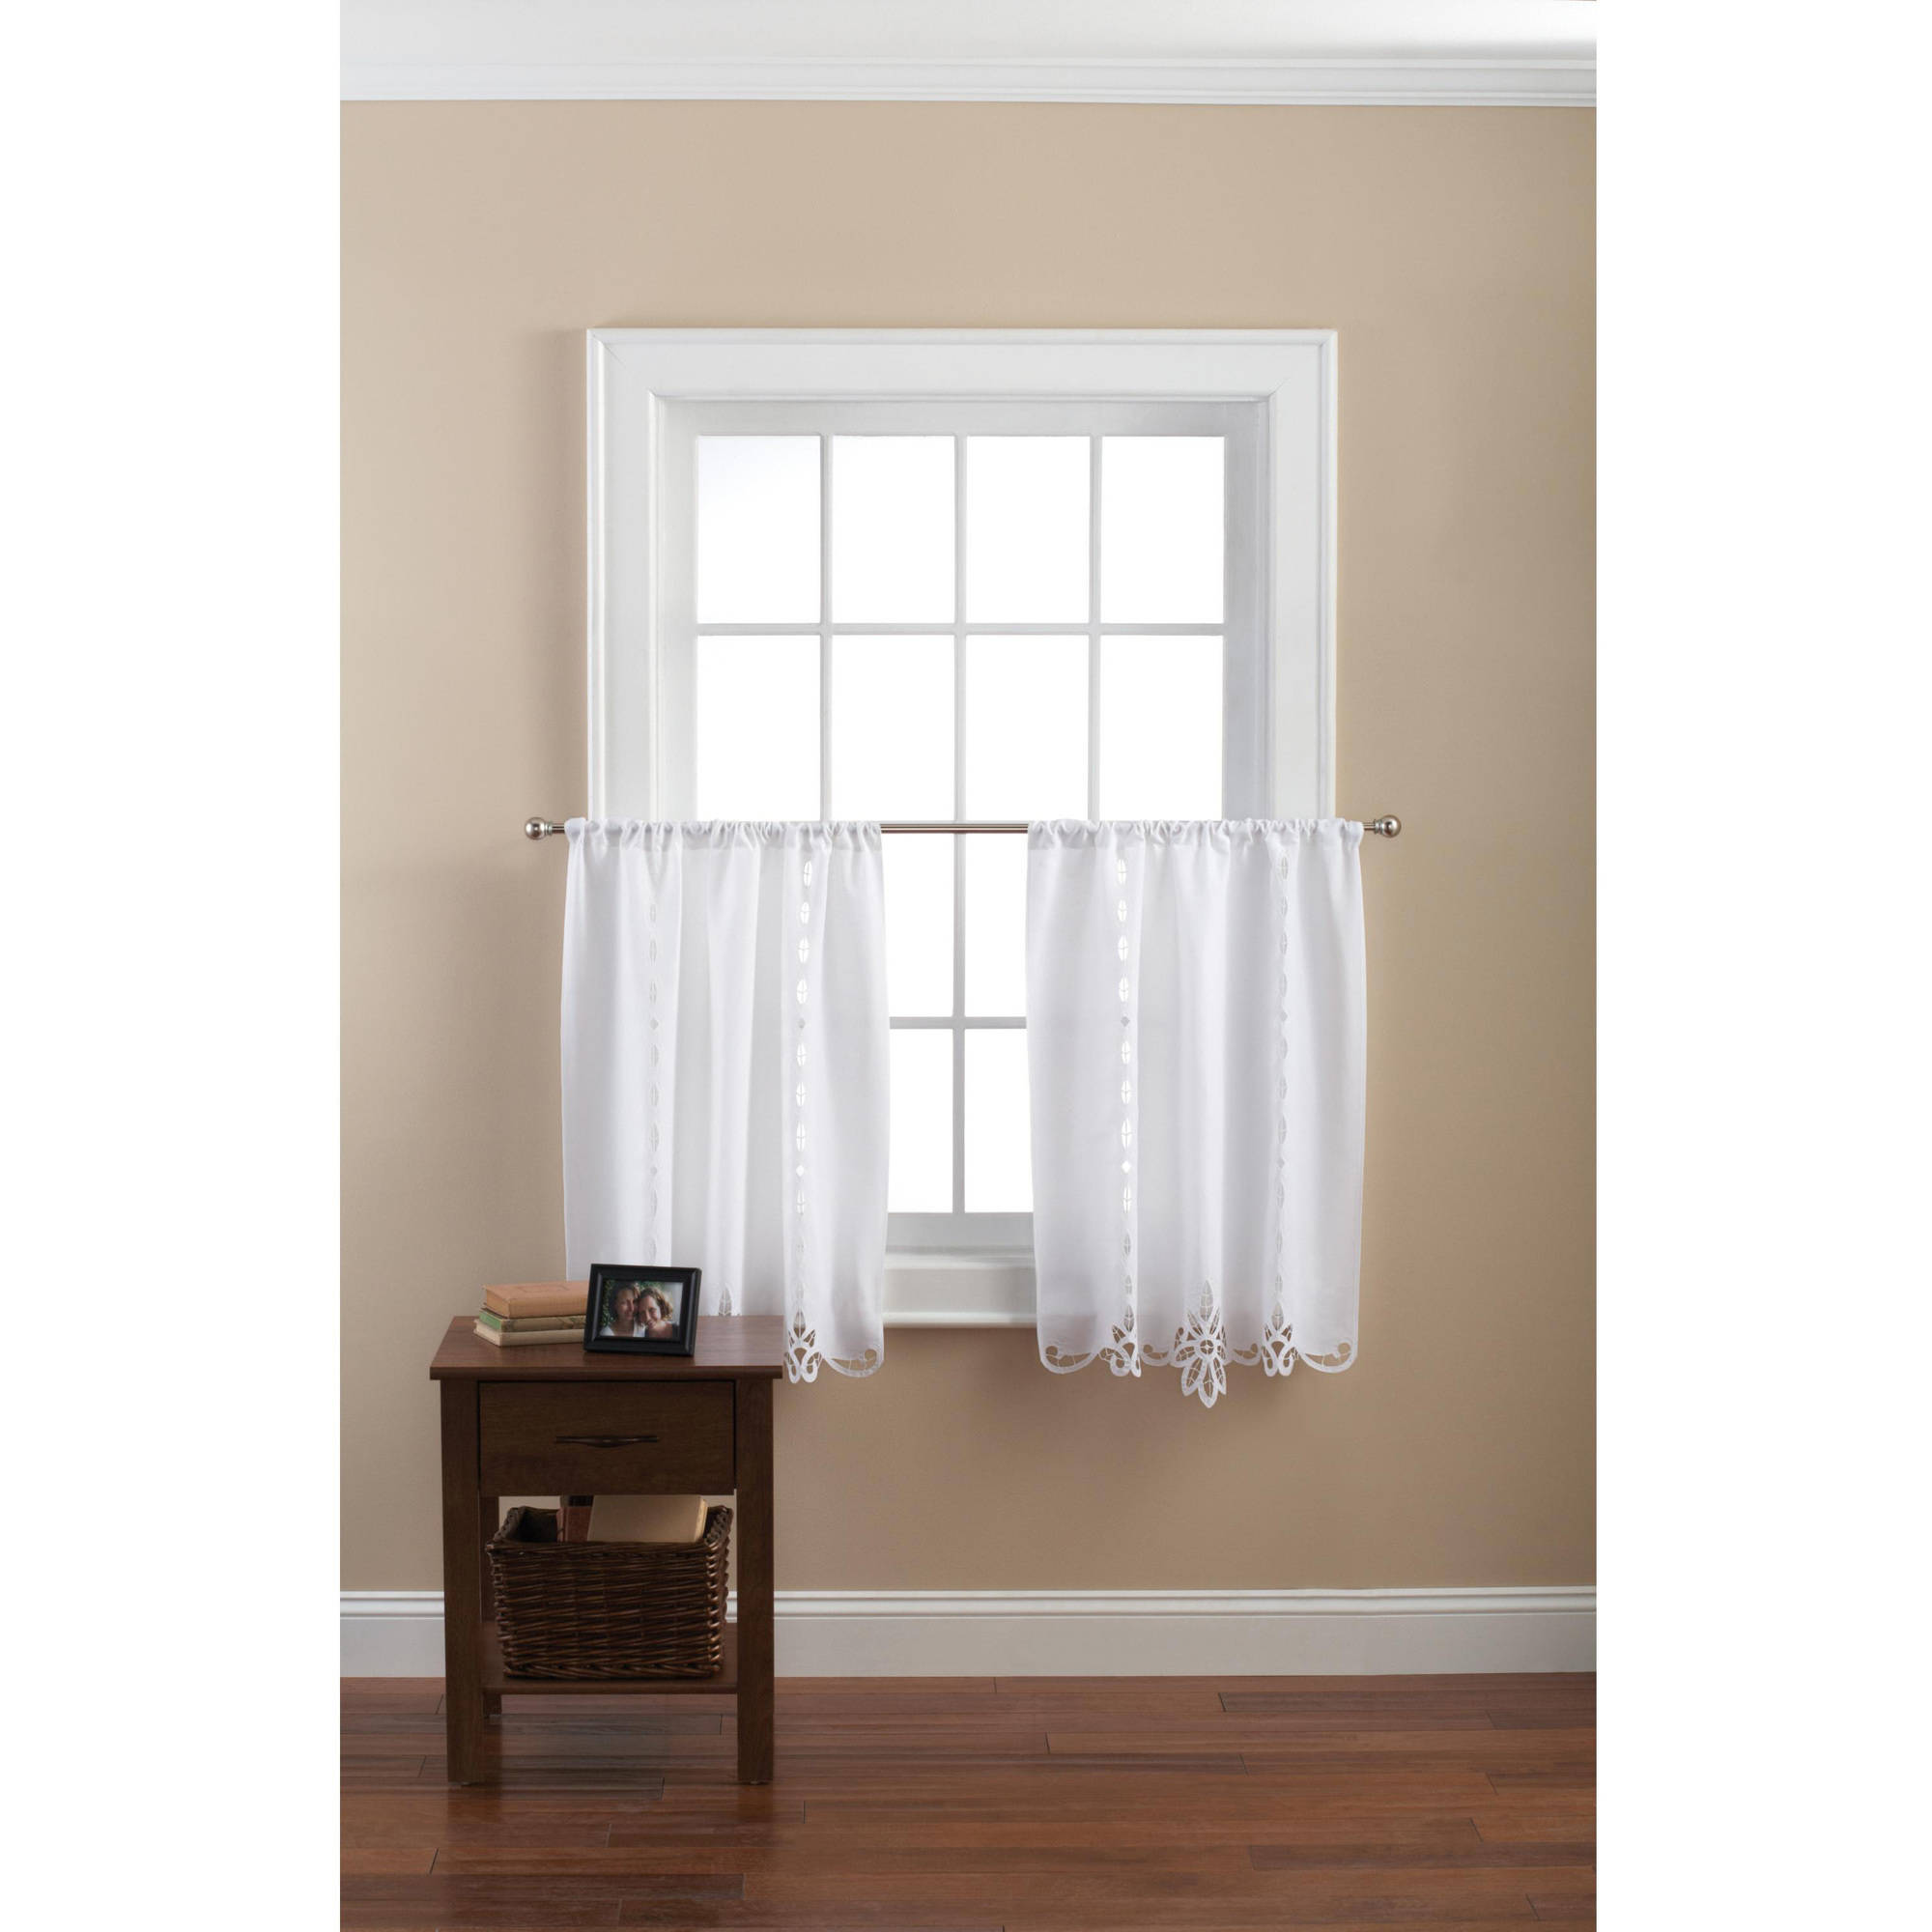 Mainstays Battenburg White Lace Kitchen Curtains, Set of 2 - Walmart.com